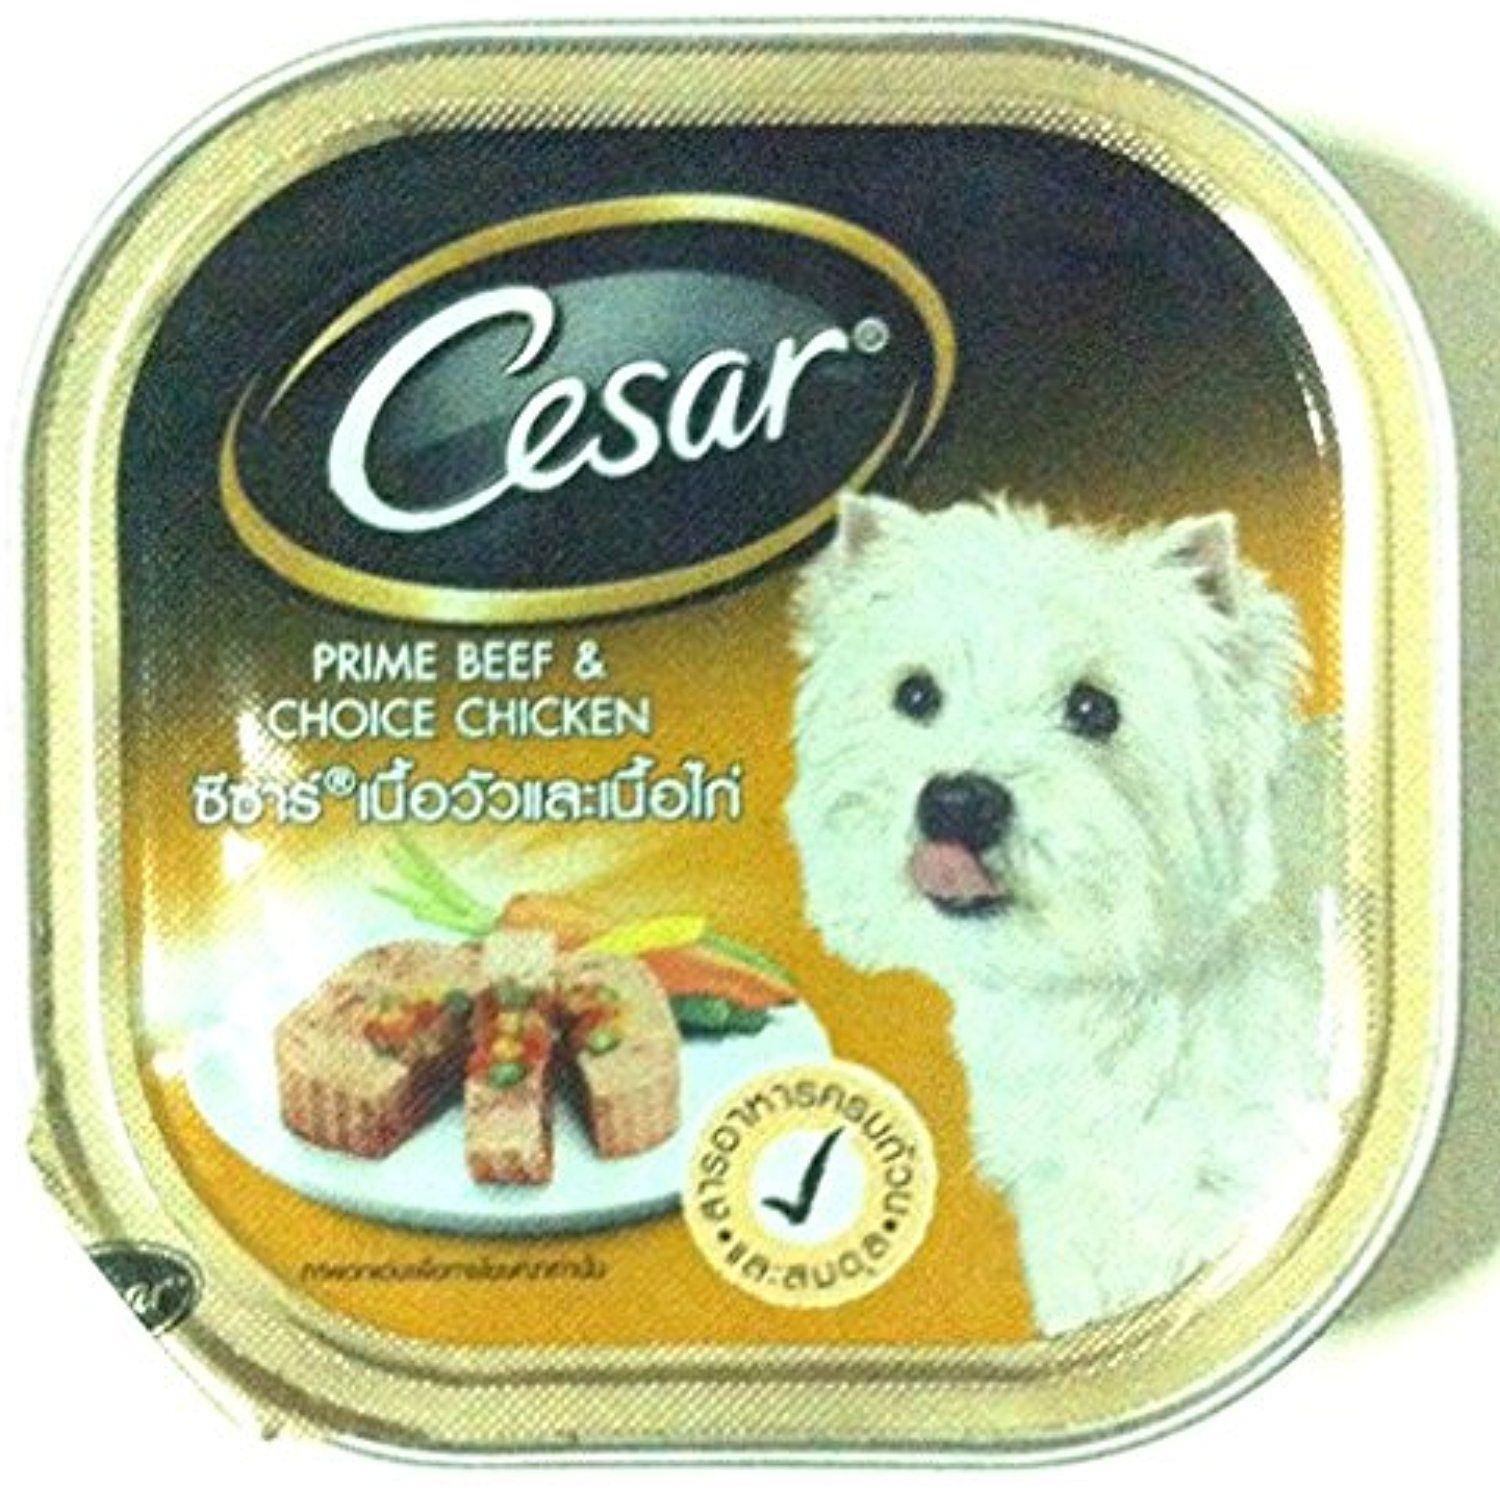 Cesar Dog Food With Beef Chicken Flavor 100 G 3 52 Oz You